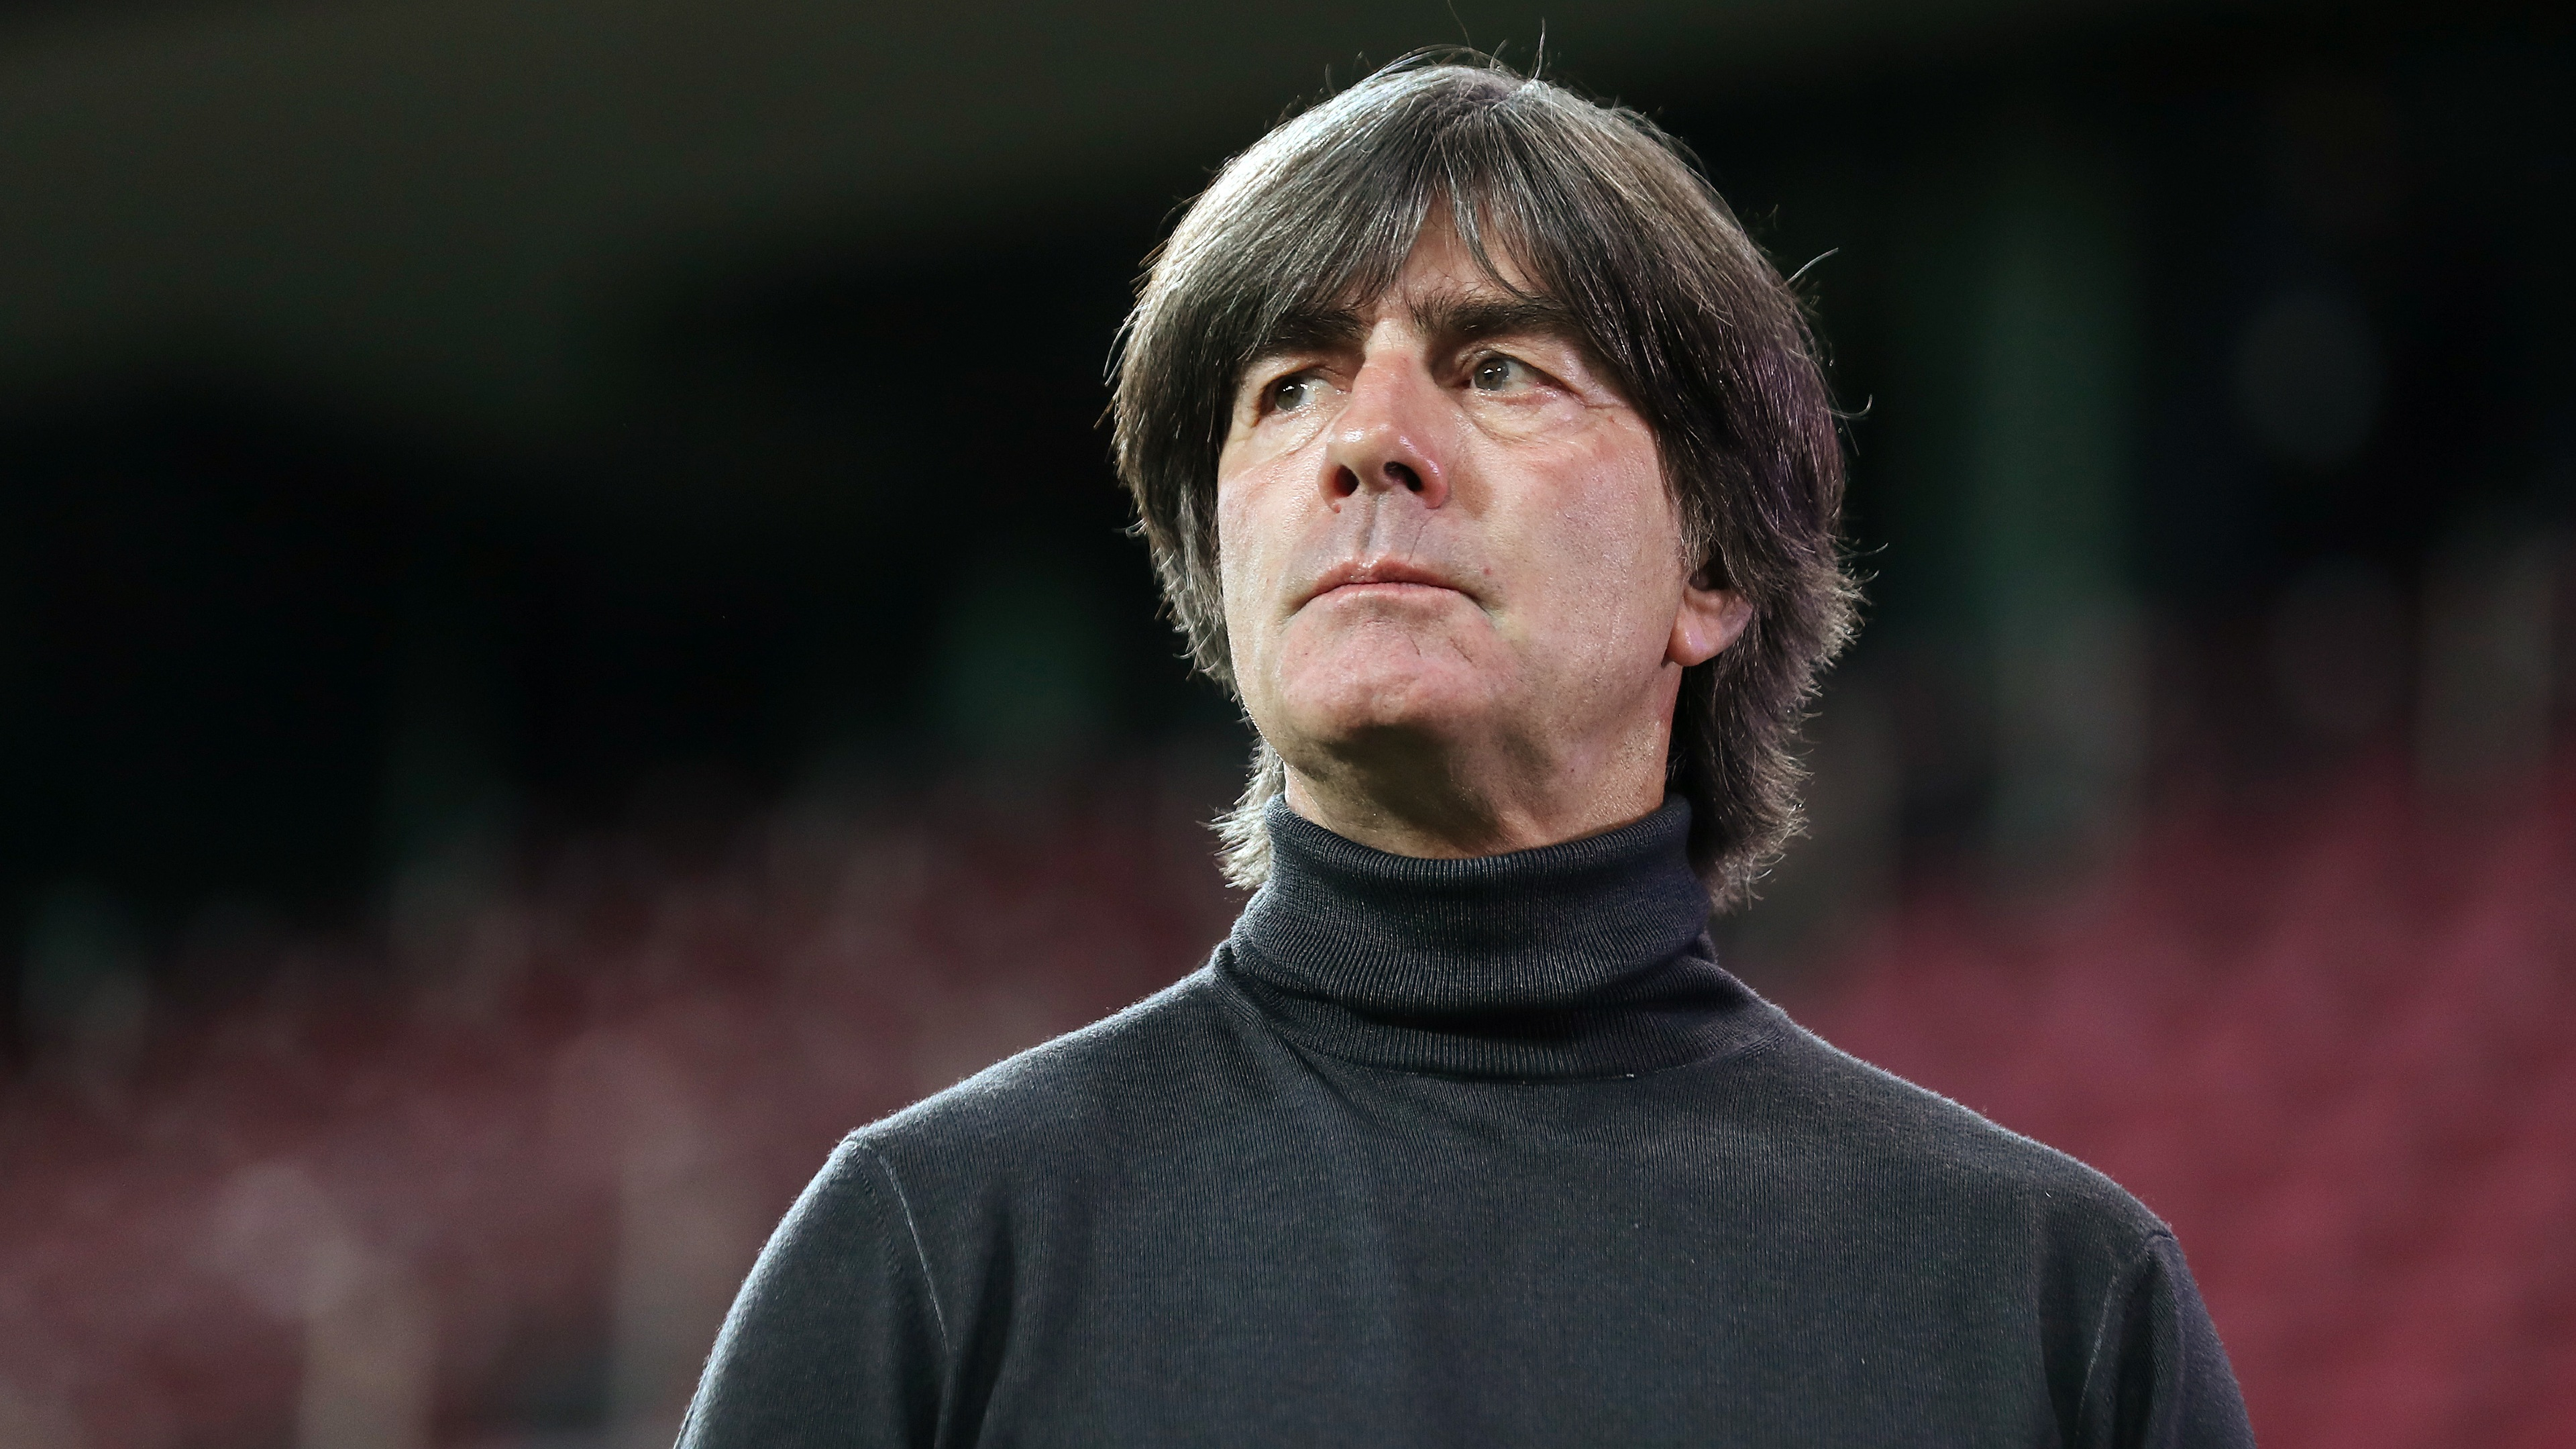 'Everything was really bad' - Germany boss Low laments Spain humiliation in record-breaking loss